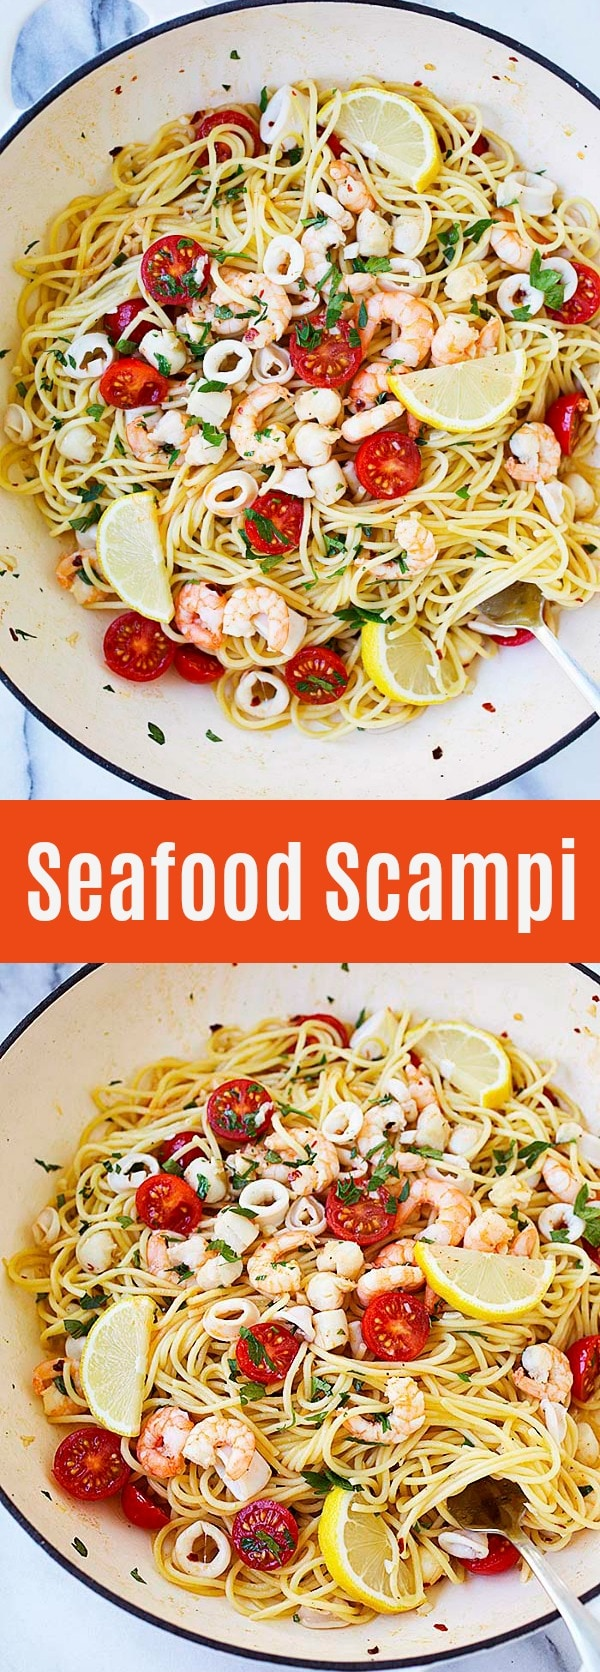 Seafood Scampi - the best seafood pasta with lemon and butter sauce. The perfect dinner for the entire family or special occasions. Absolutely delicious!